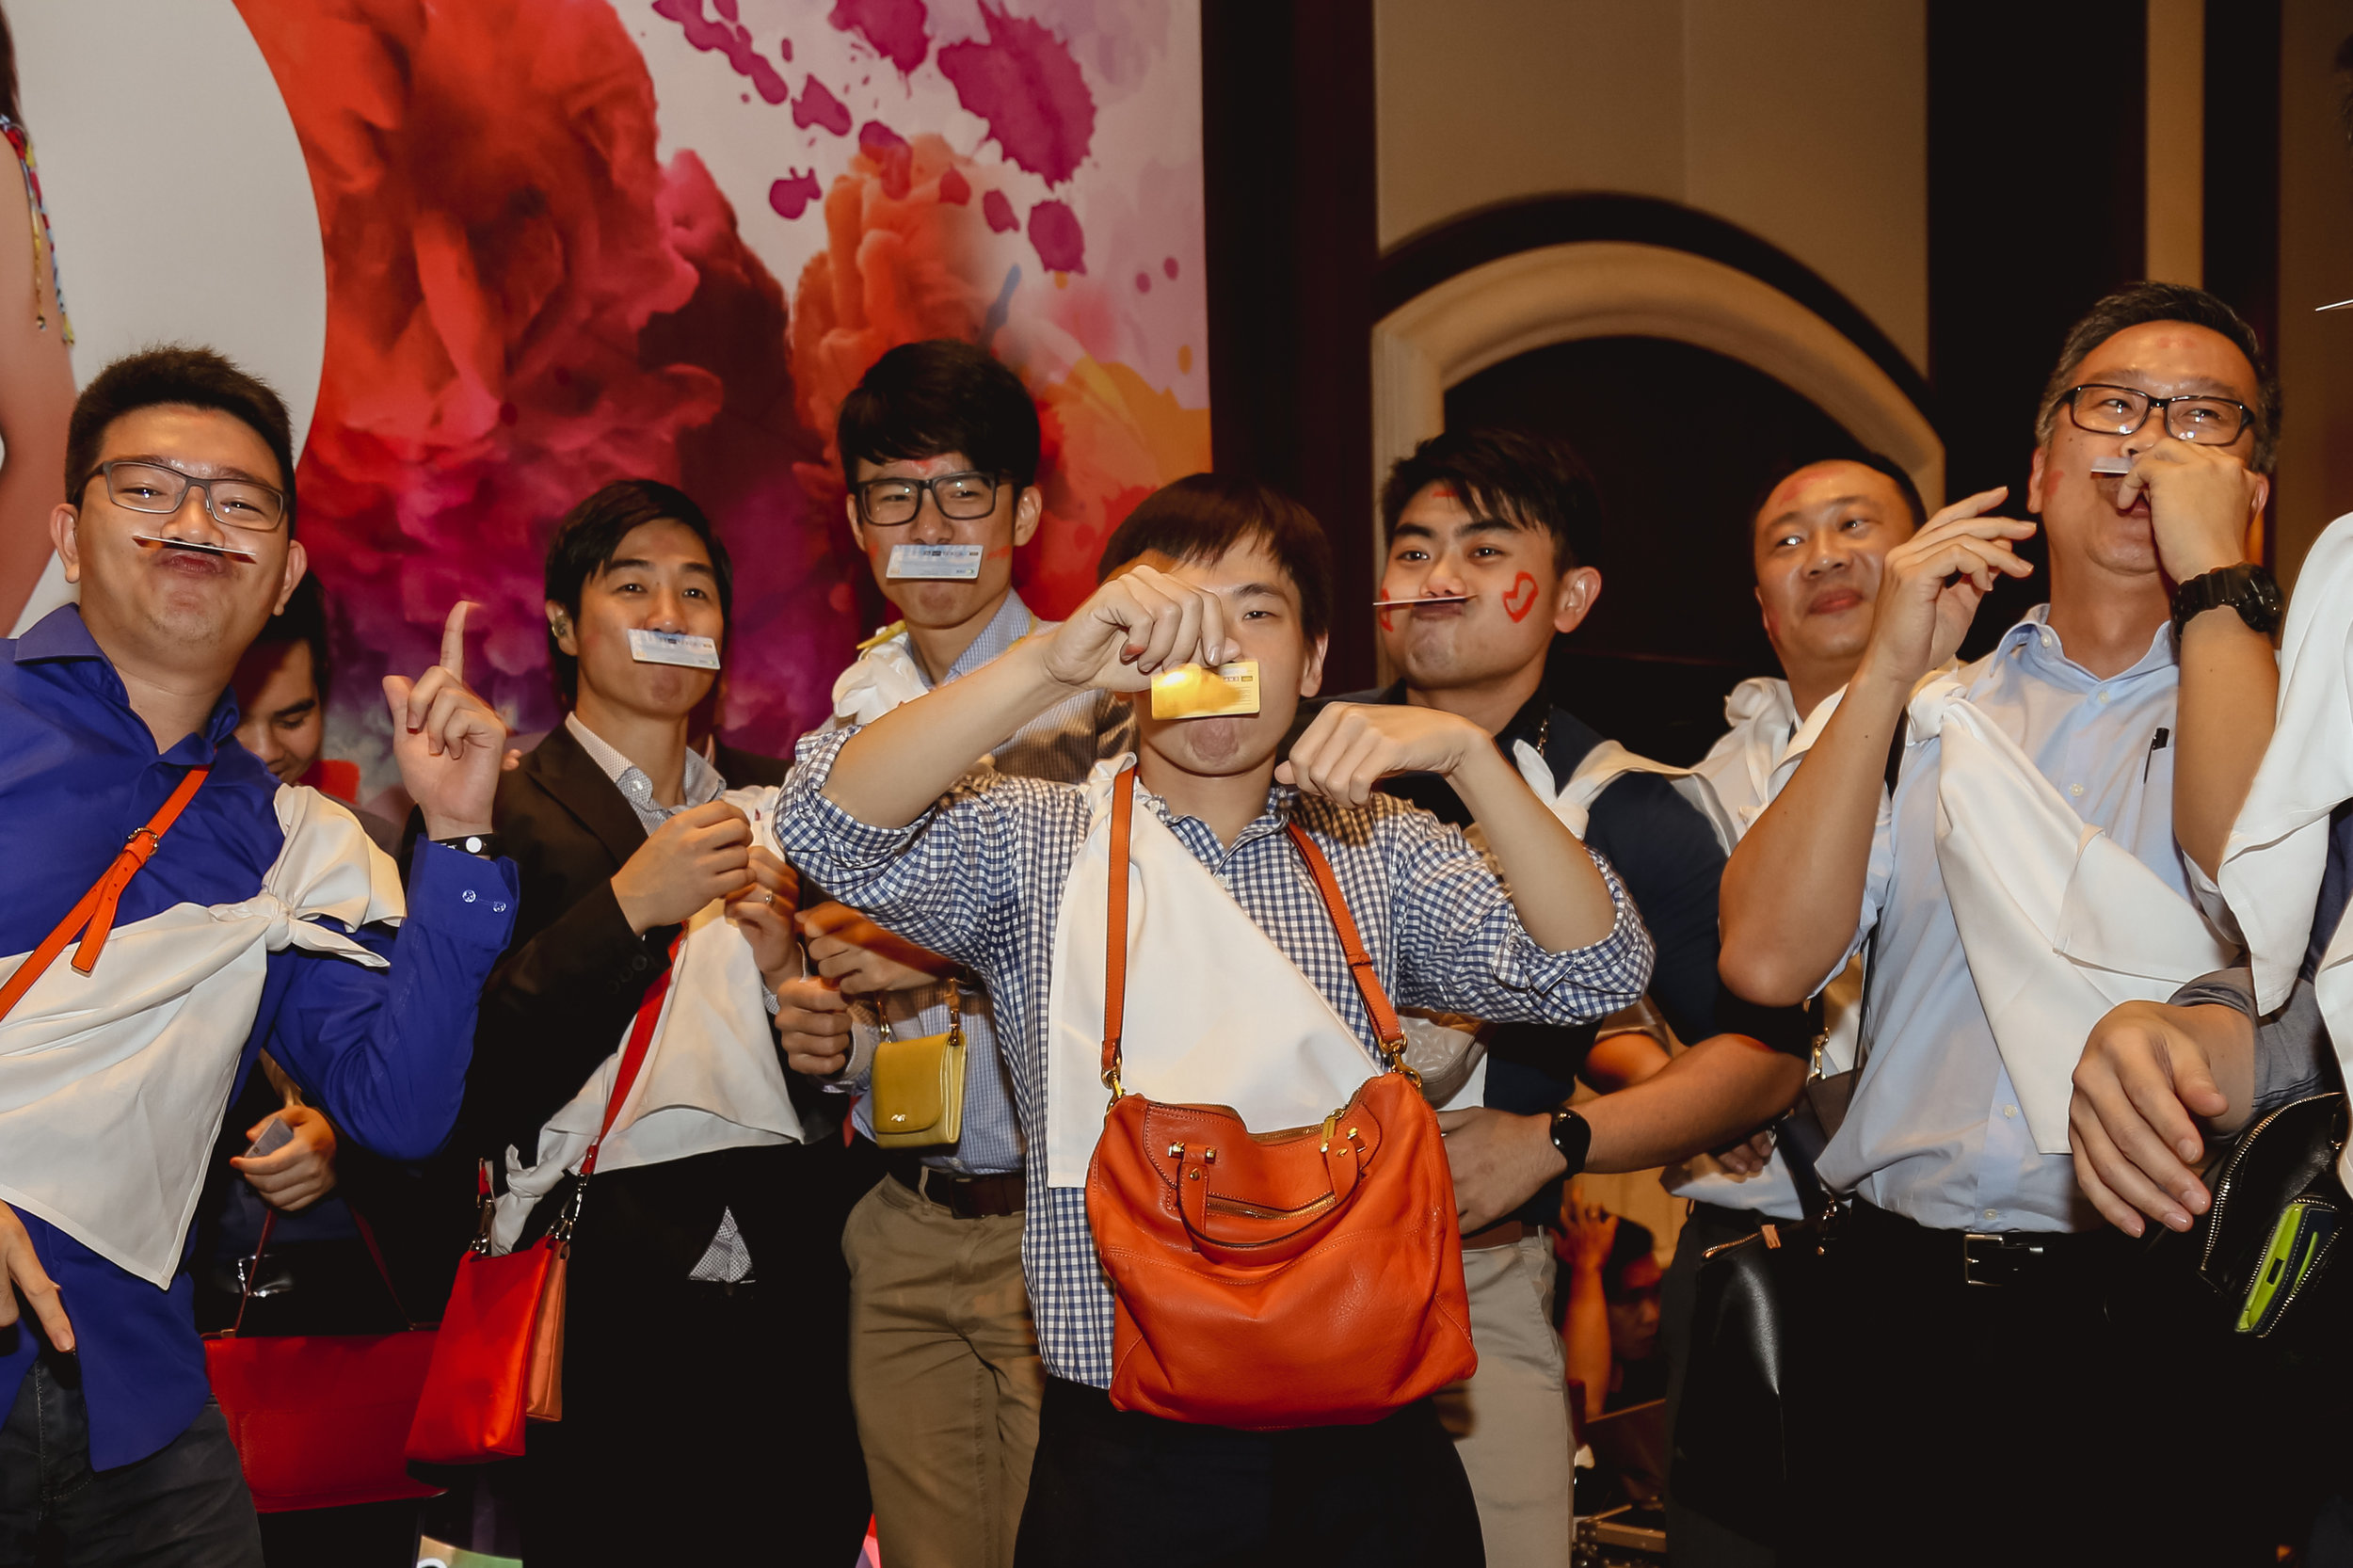 Singhealth Dinner & Dance 2016